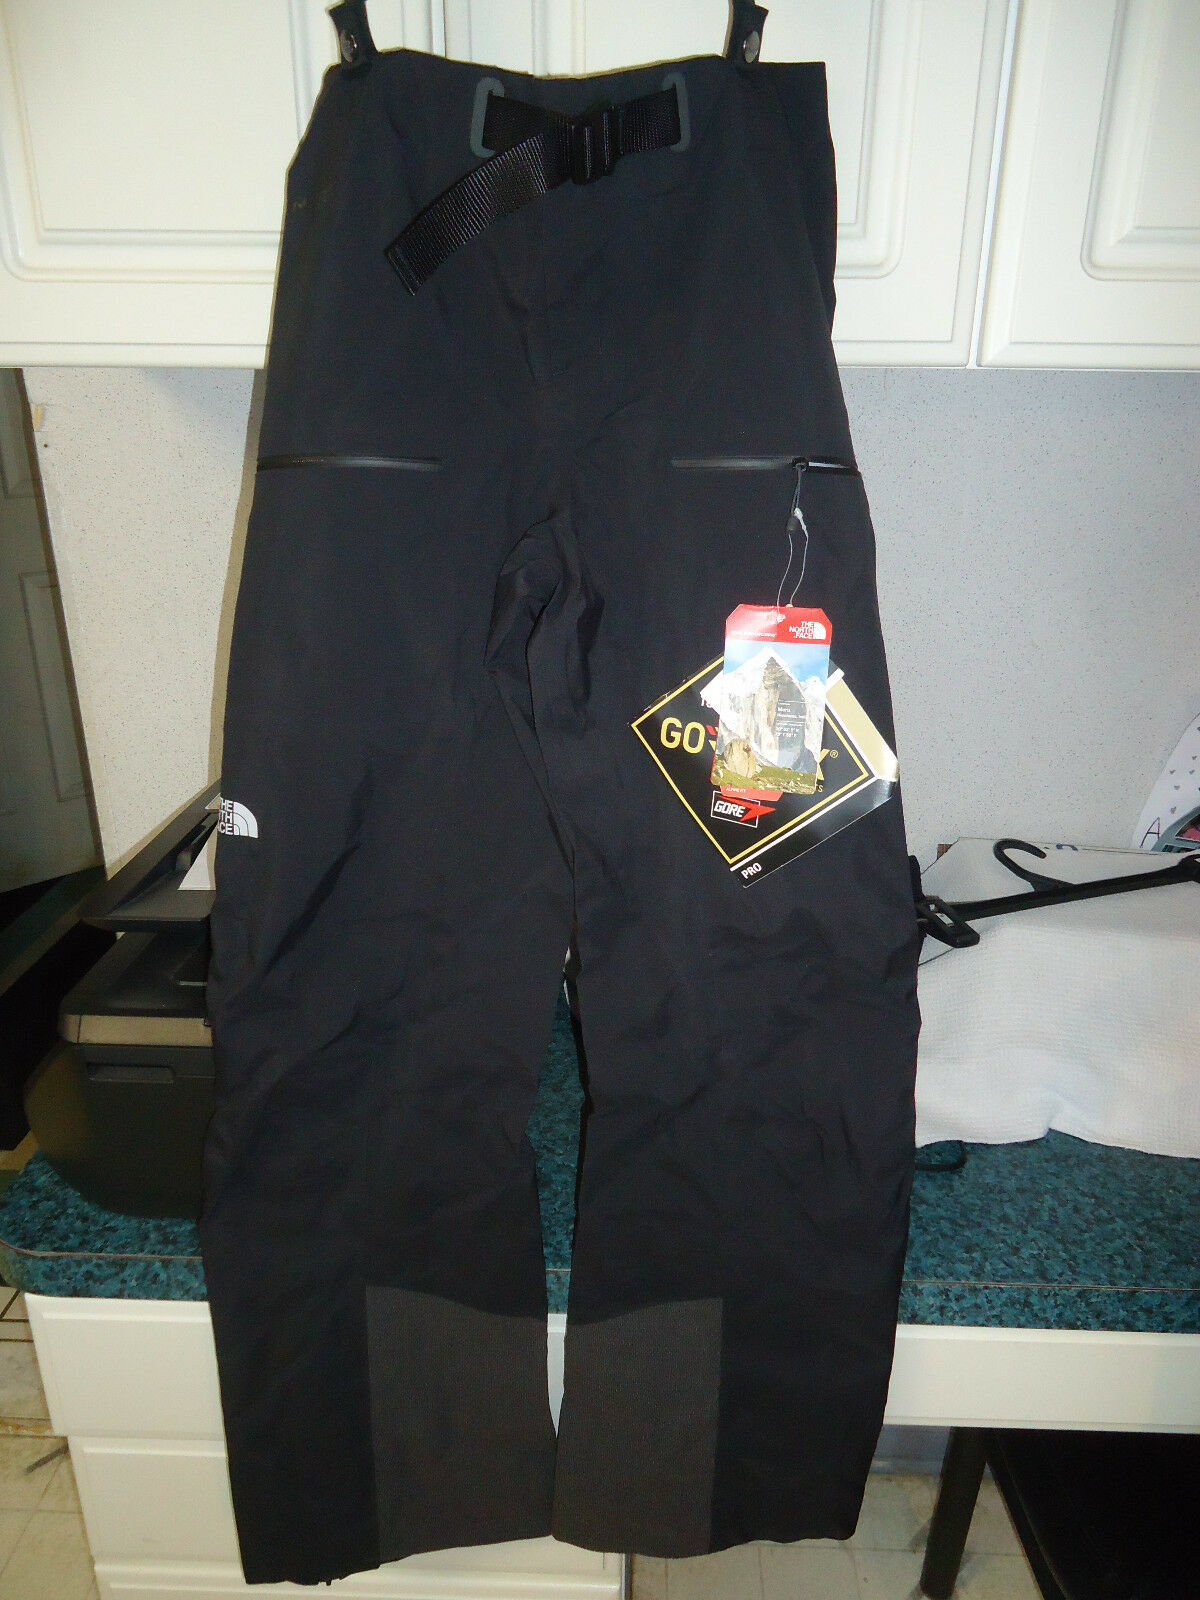 THE NORTH FACE DIHEDRAL GORE-TEX BIB SHELL PANTS WOMEN'S SIZE 8 REGULAR -